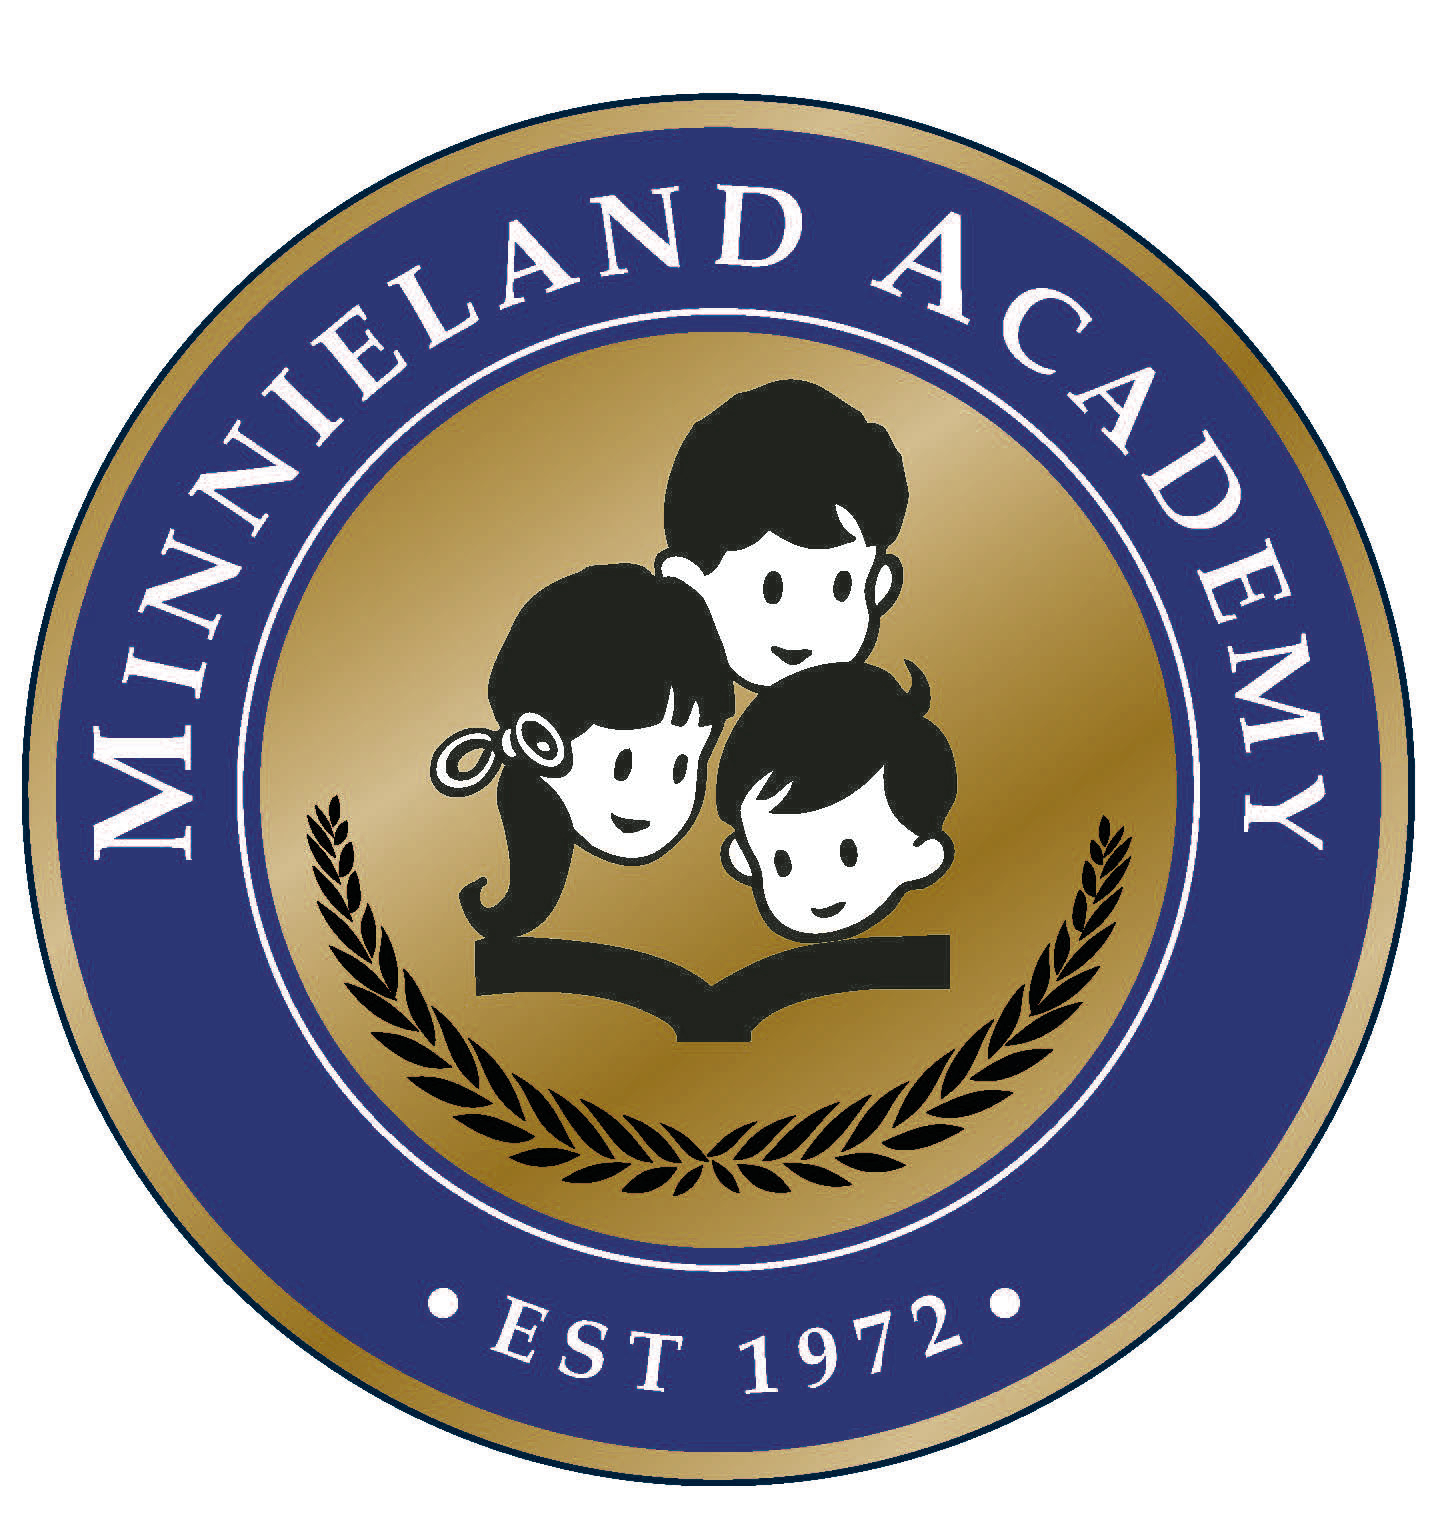 Minnieland Academy at Technology